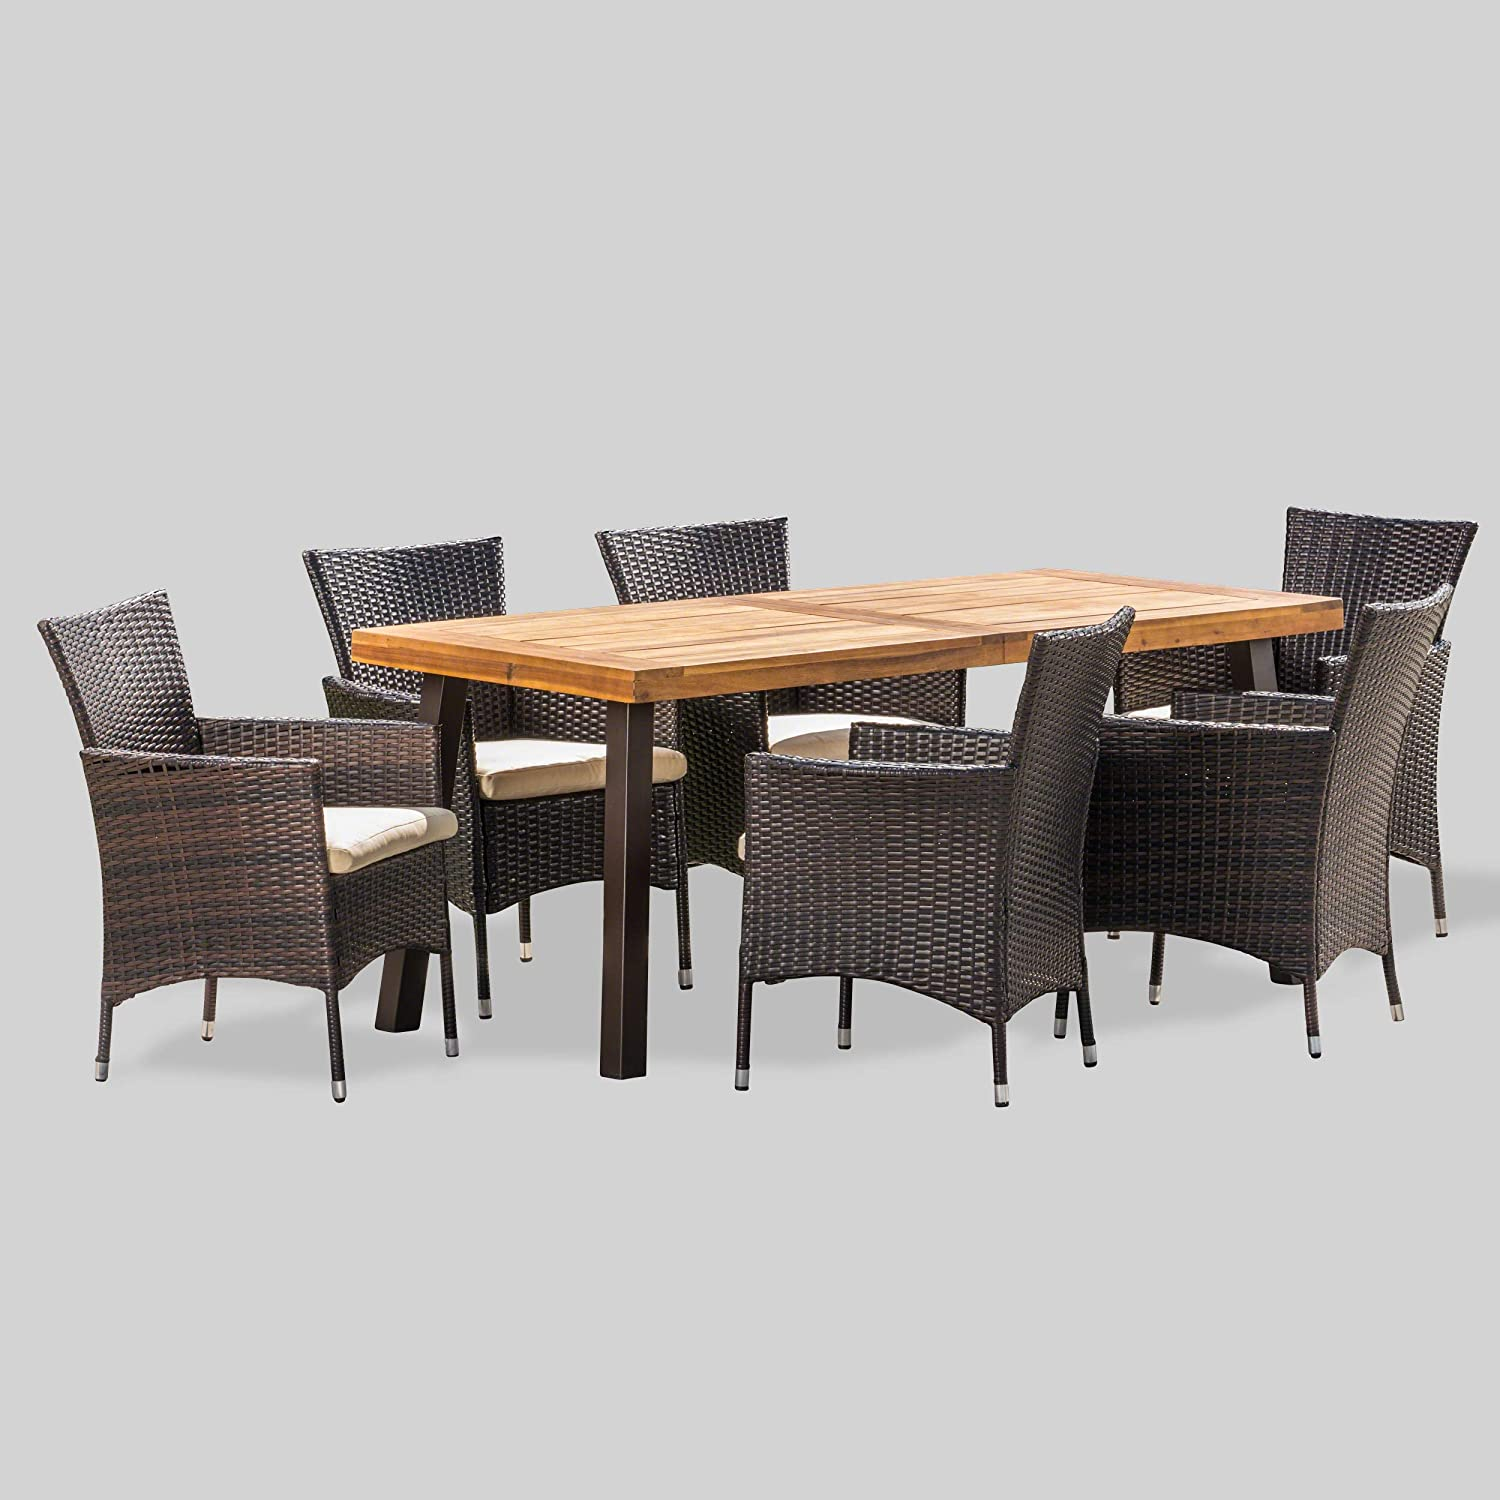 Christopher Knight Home Randy   Outdoor 9 Piece Acacia Wood and Wicker  Dining Set with Cushions   Teak Finish   in Multibrown/Beige, Rustic Metal